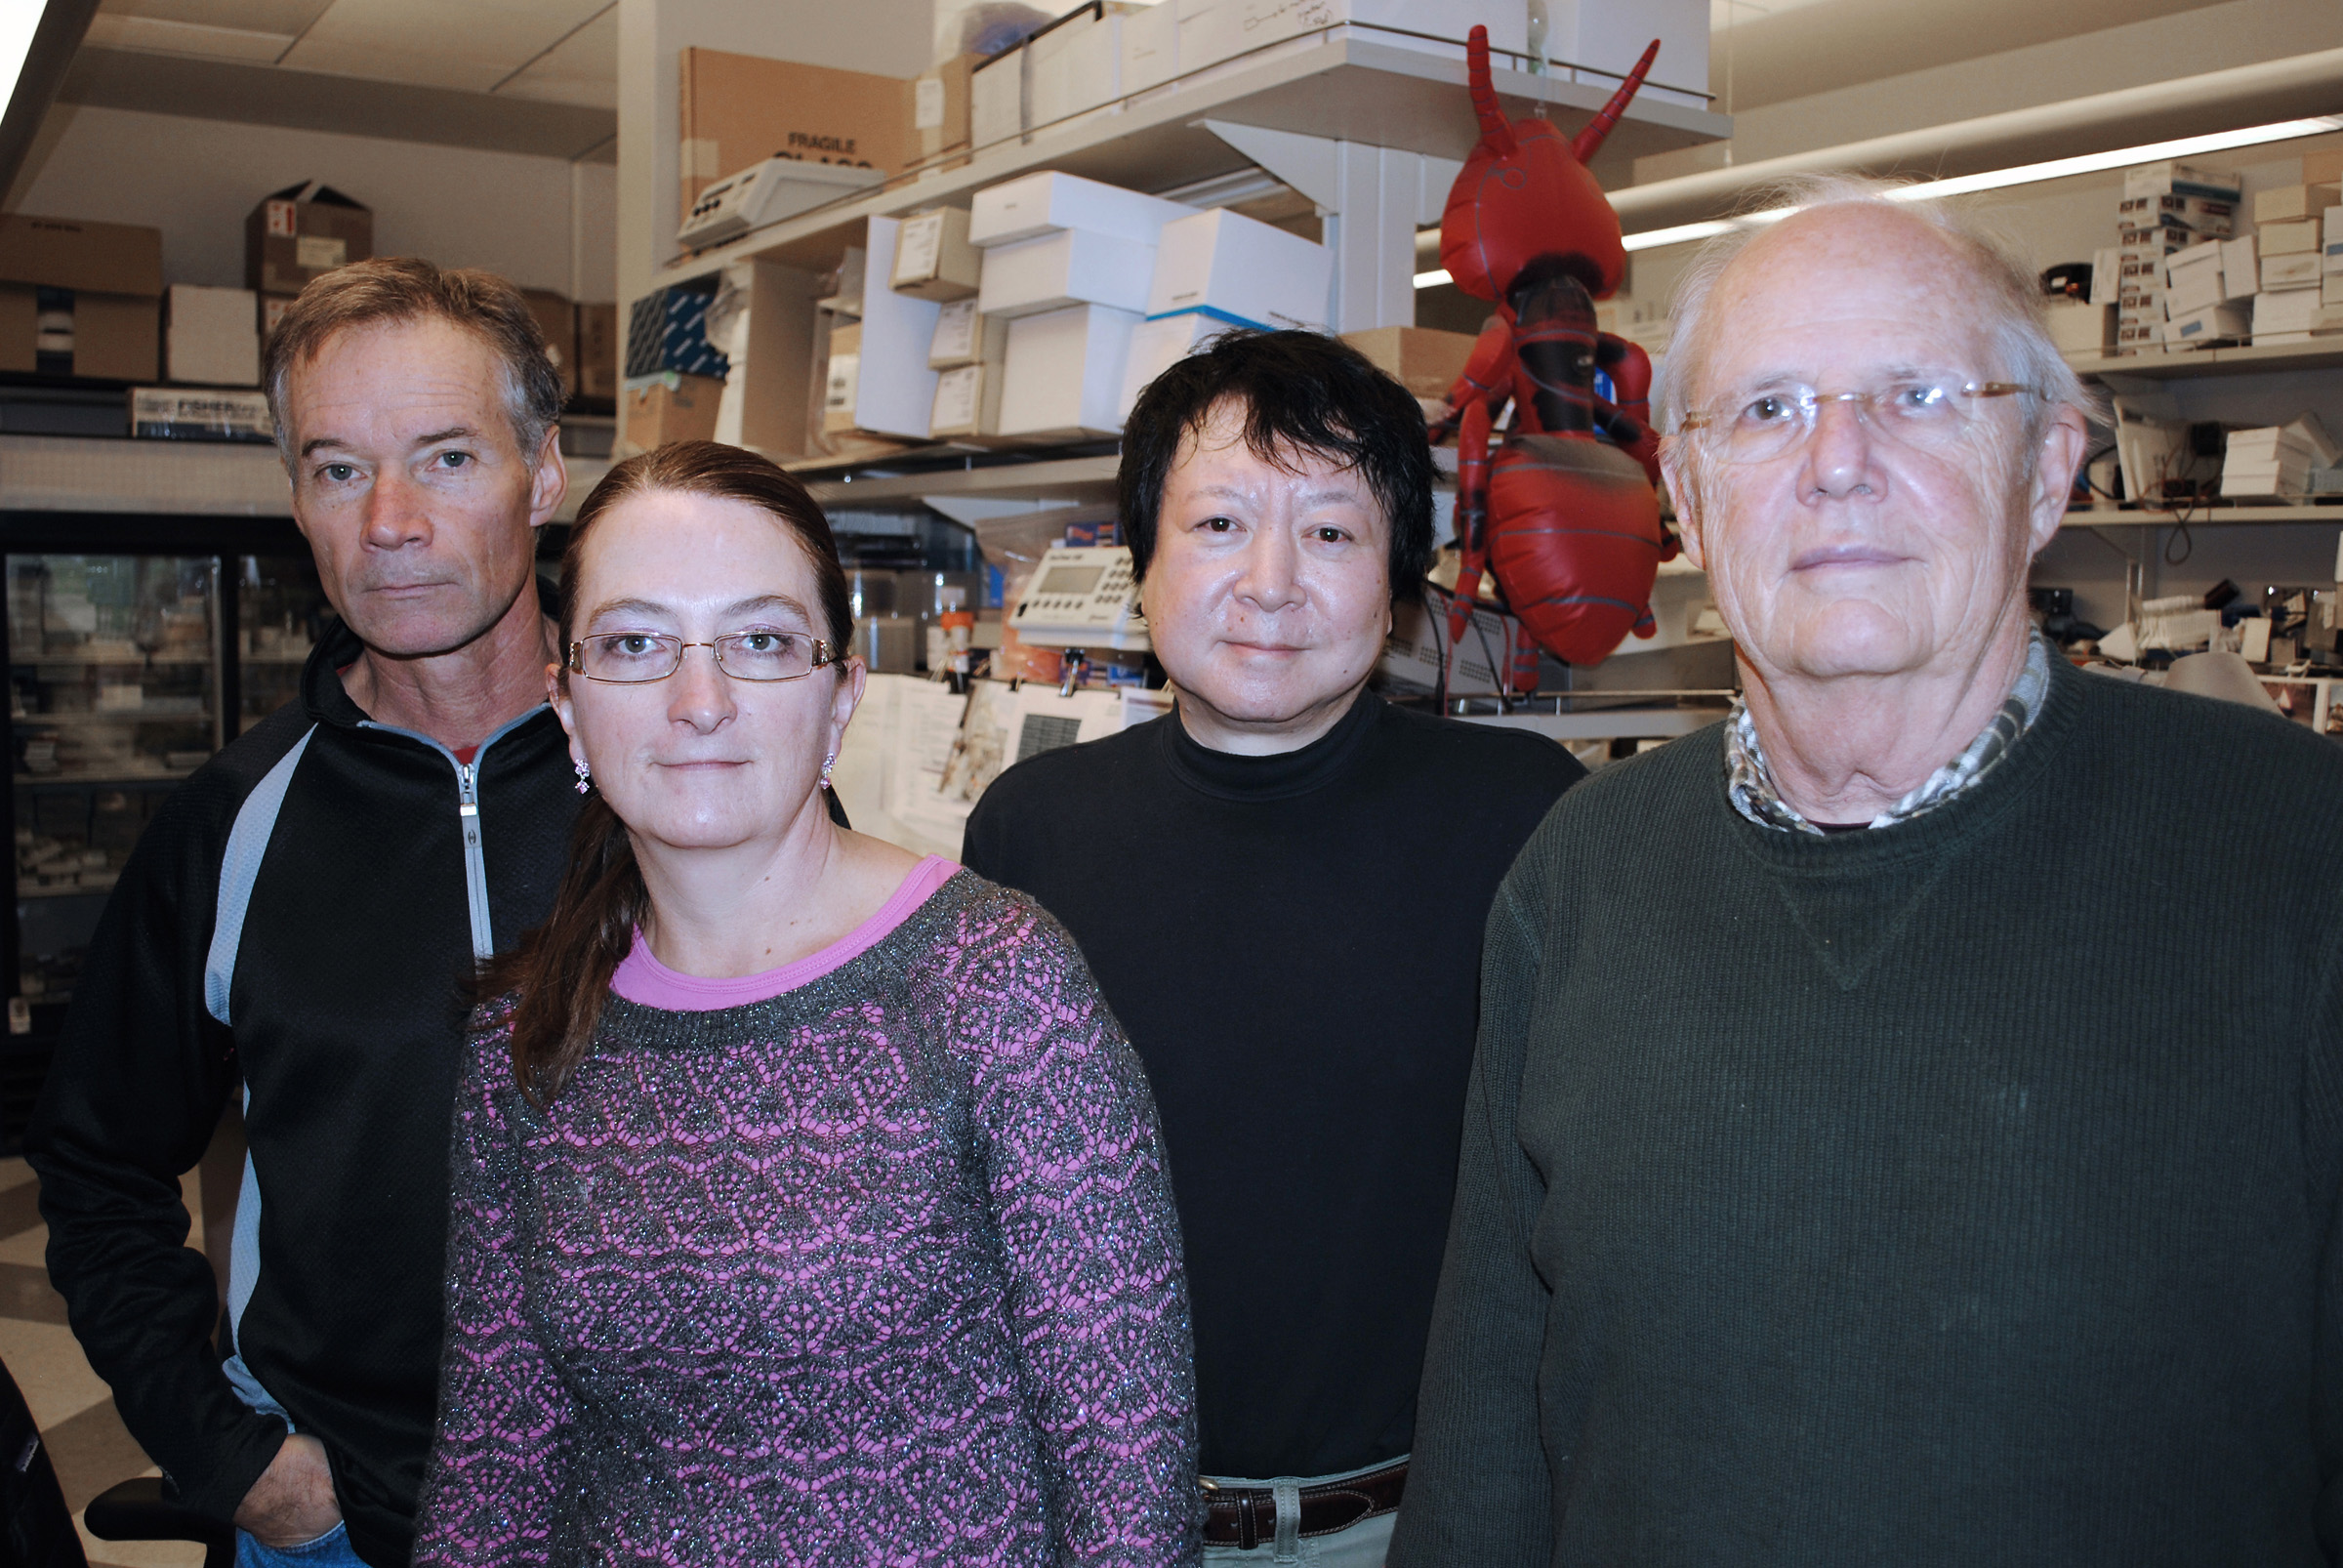 •University of Utah researchers collaborated with other institutions on a long-term research project that is helping extend our understanding of genes related to autism spectrum disorder. Pictured are (left to right) Jeff Stevens, Lisa Baird, Nori Matsunami and Mark Leppert.